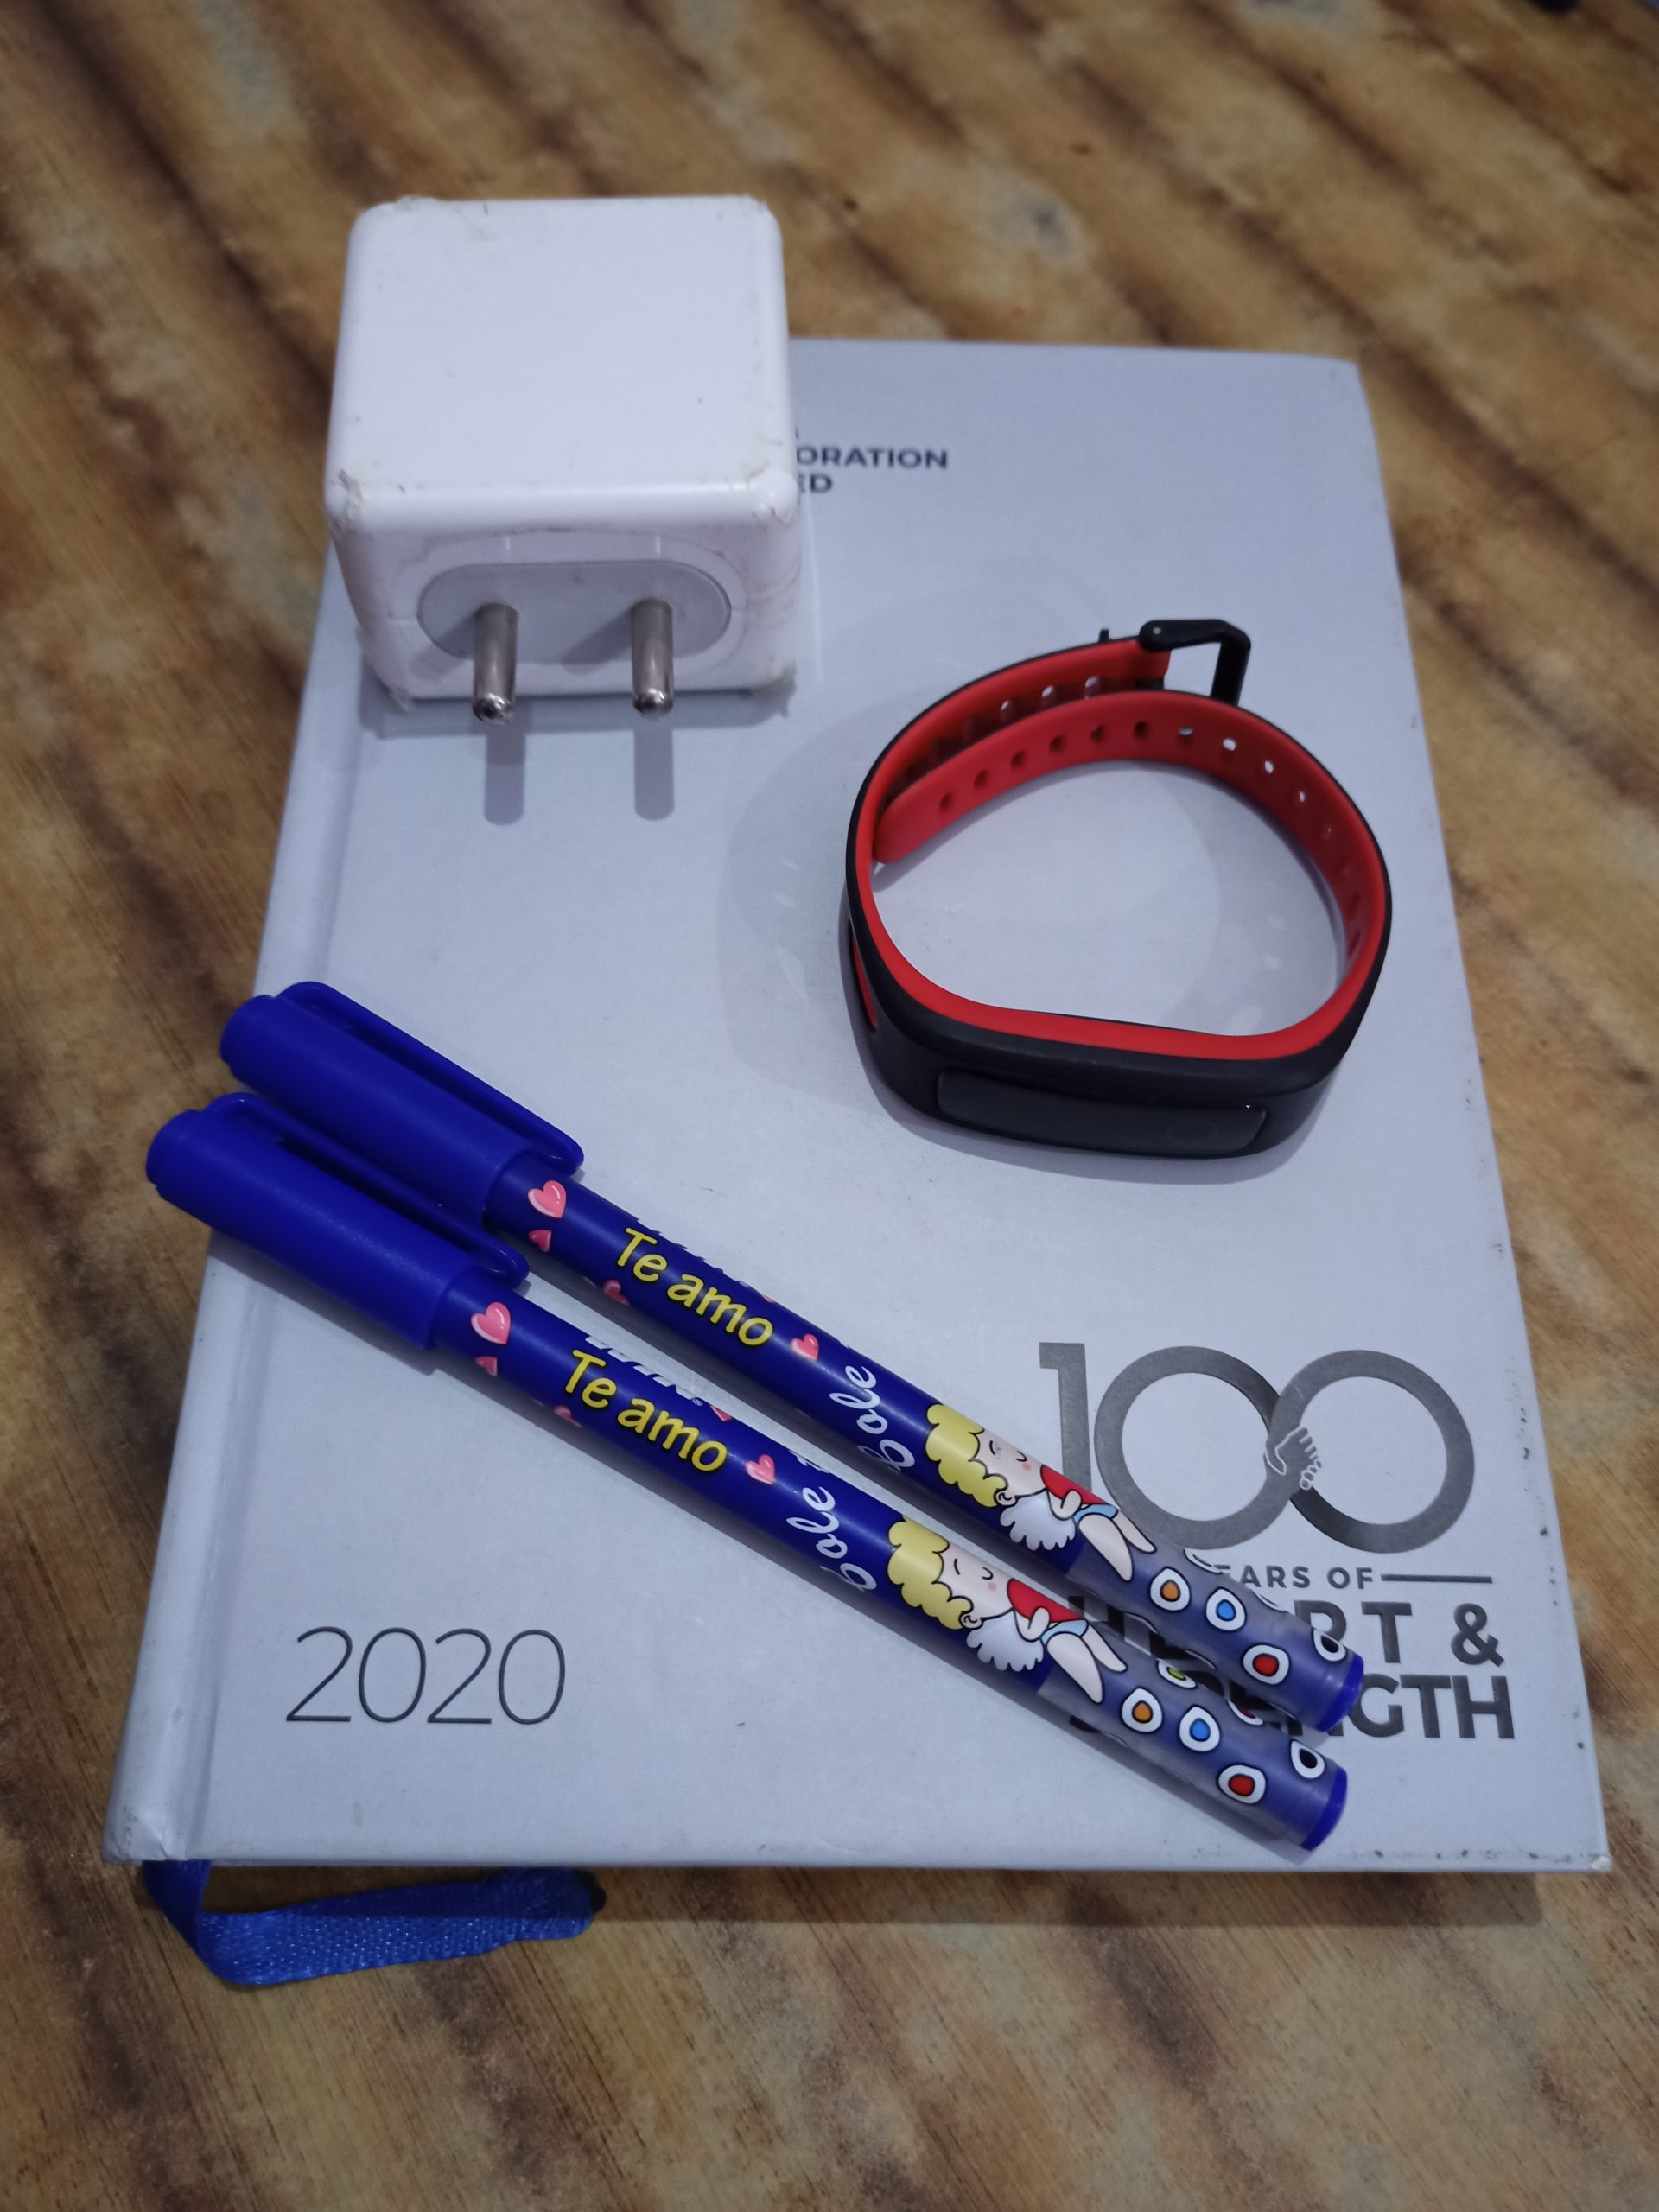 diary, pens, watch and adapter